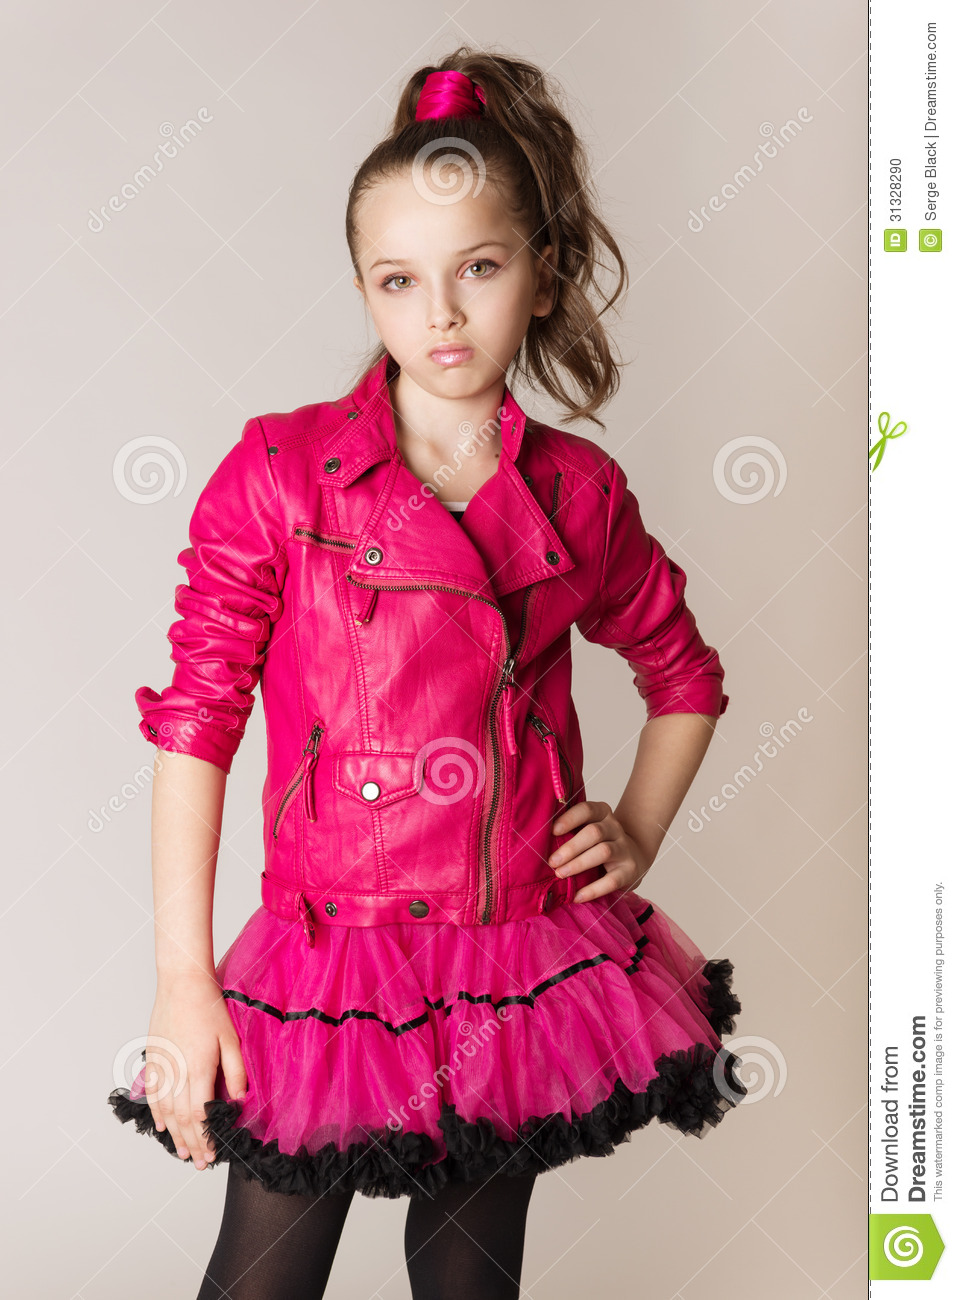 Fashion Little Girl In Glam Rock Style Stock Photo Image 31328290